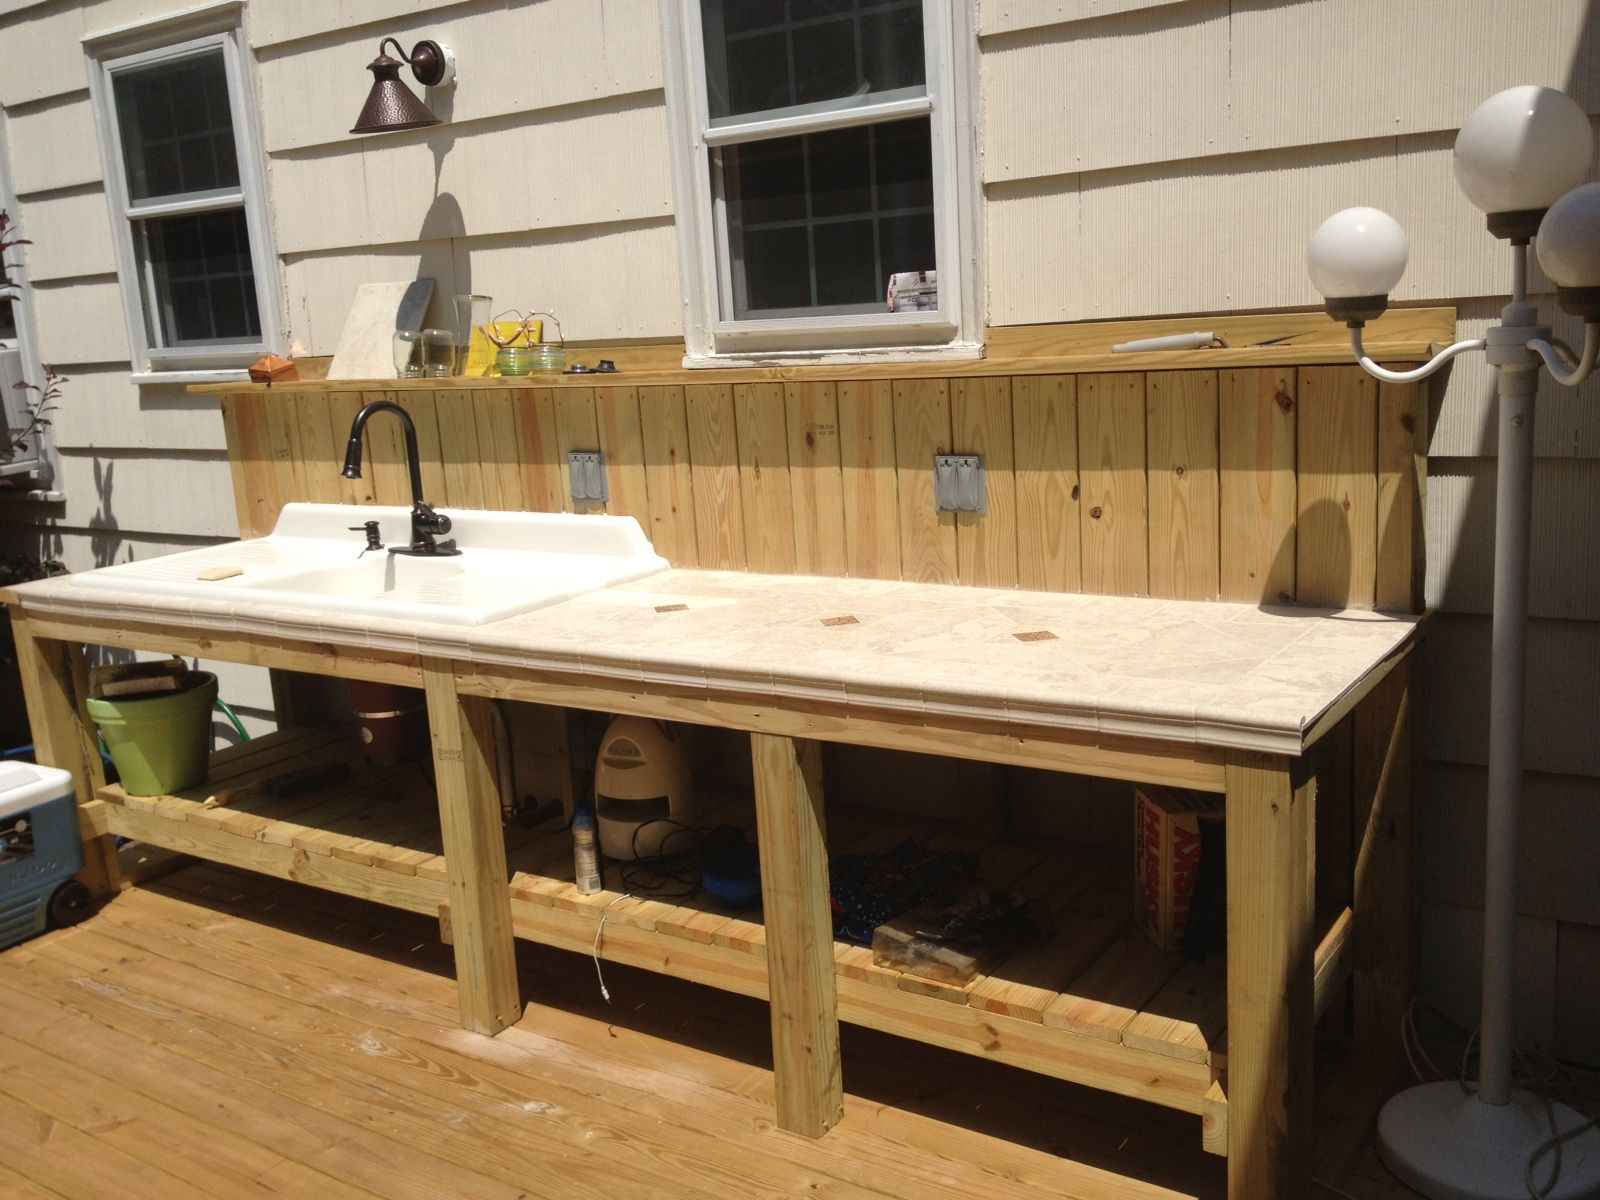 Waterproof Wood Countertop Outdoor Sink And Countertop Area Complete With Garbage